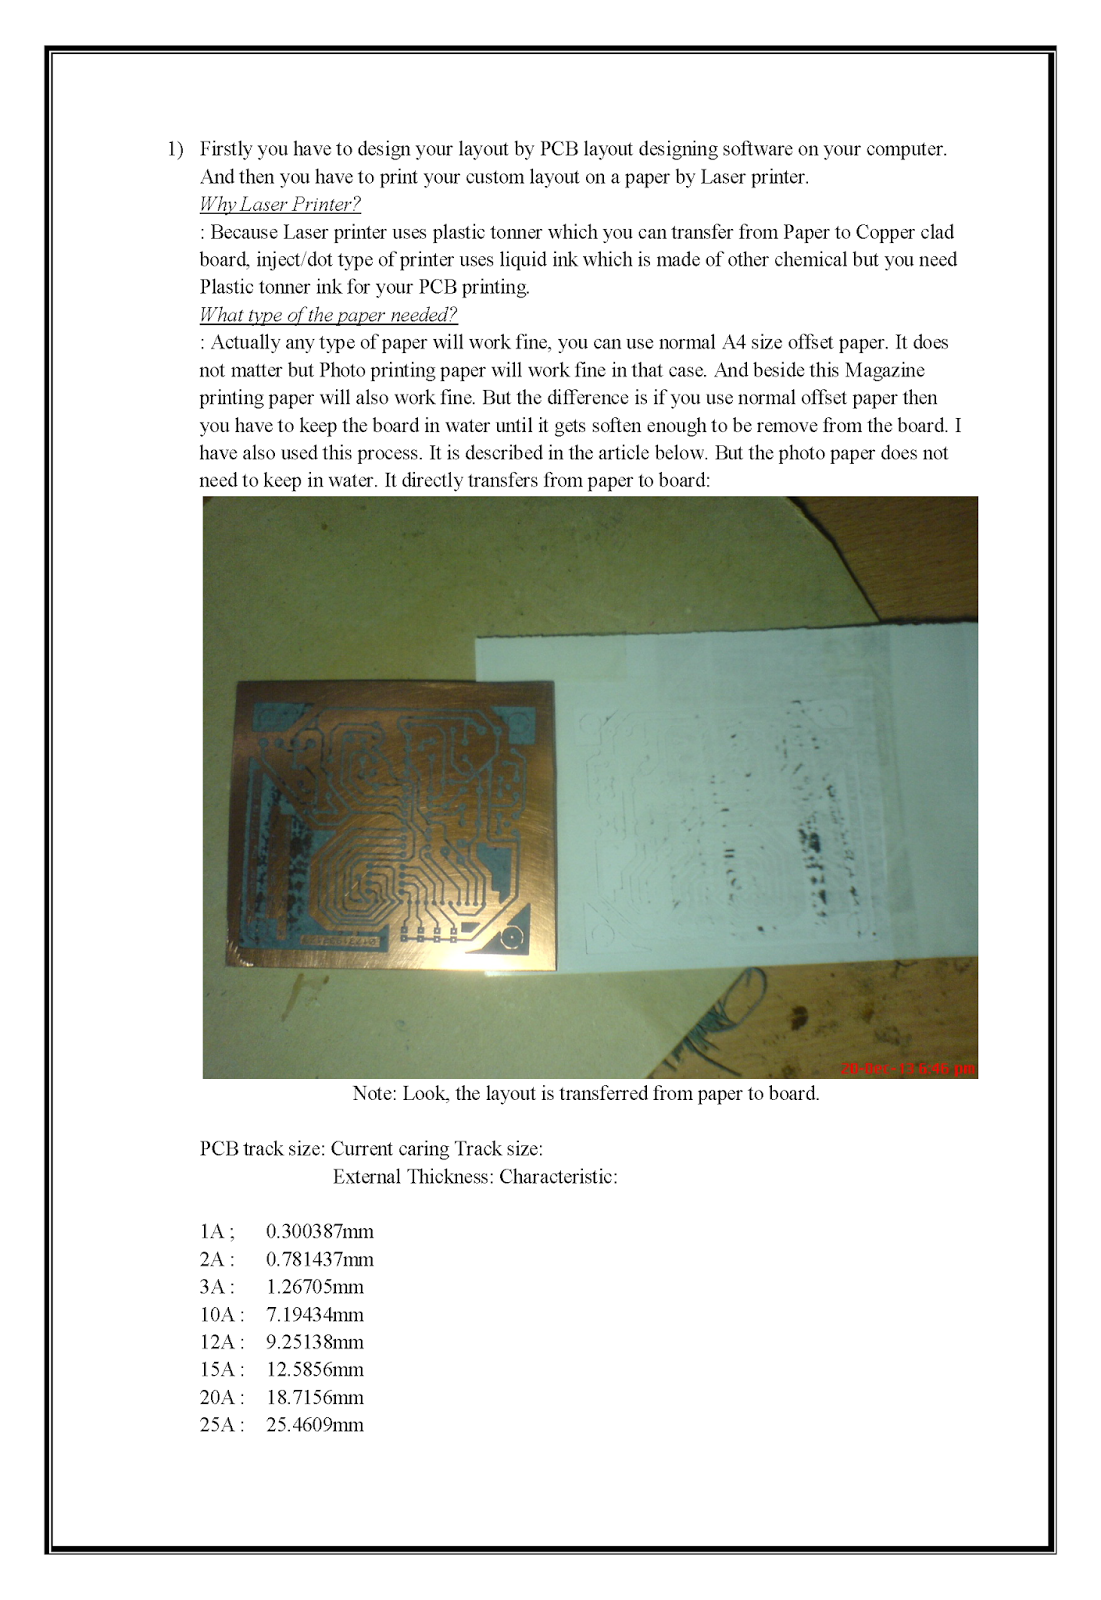 Making Pcb At Home Printed Circuit Board Print Your Boards If You Are Planning To Layout On A Copper And Want Make Custom Then My This Attached Hand Note Will Help